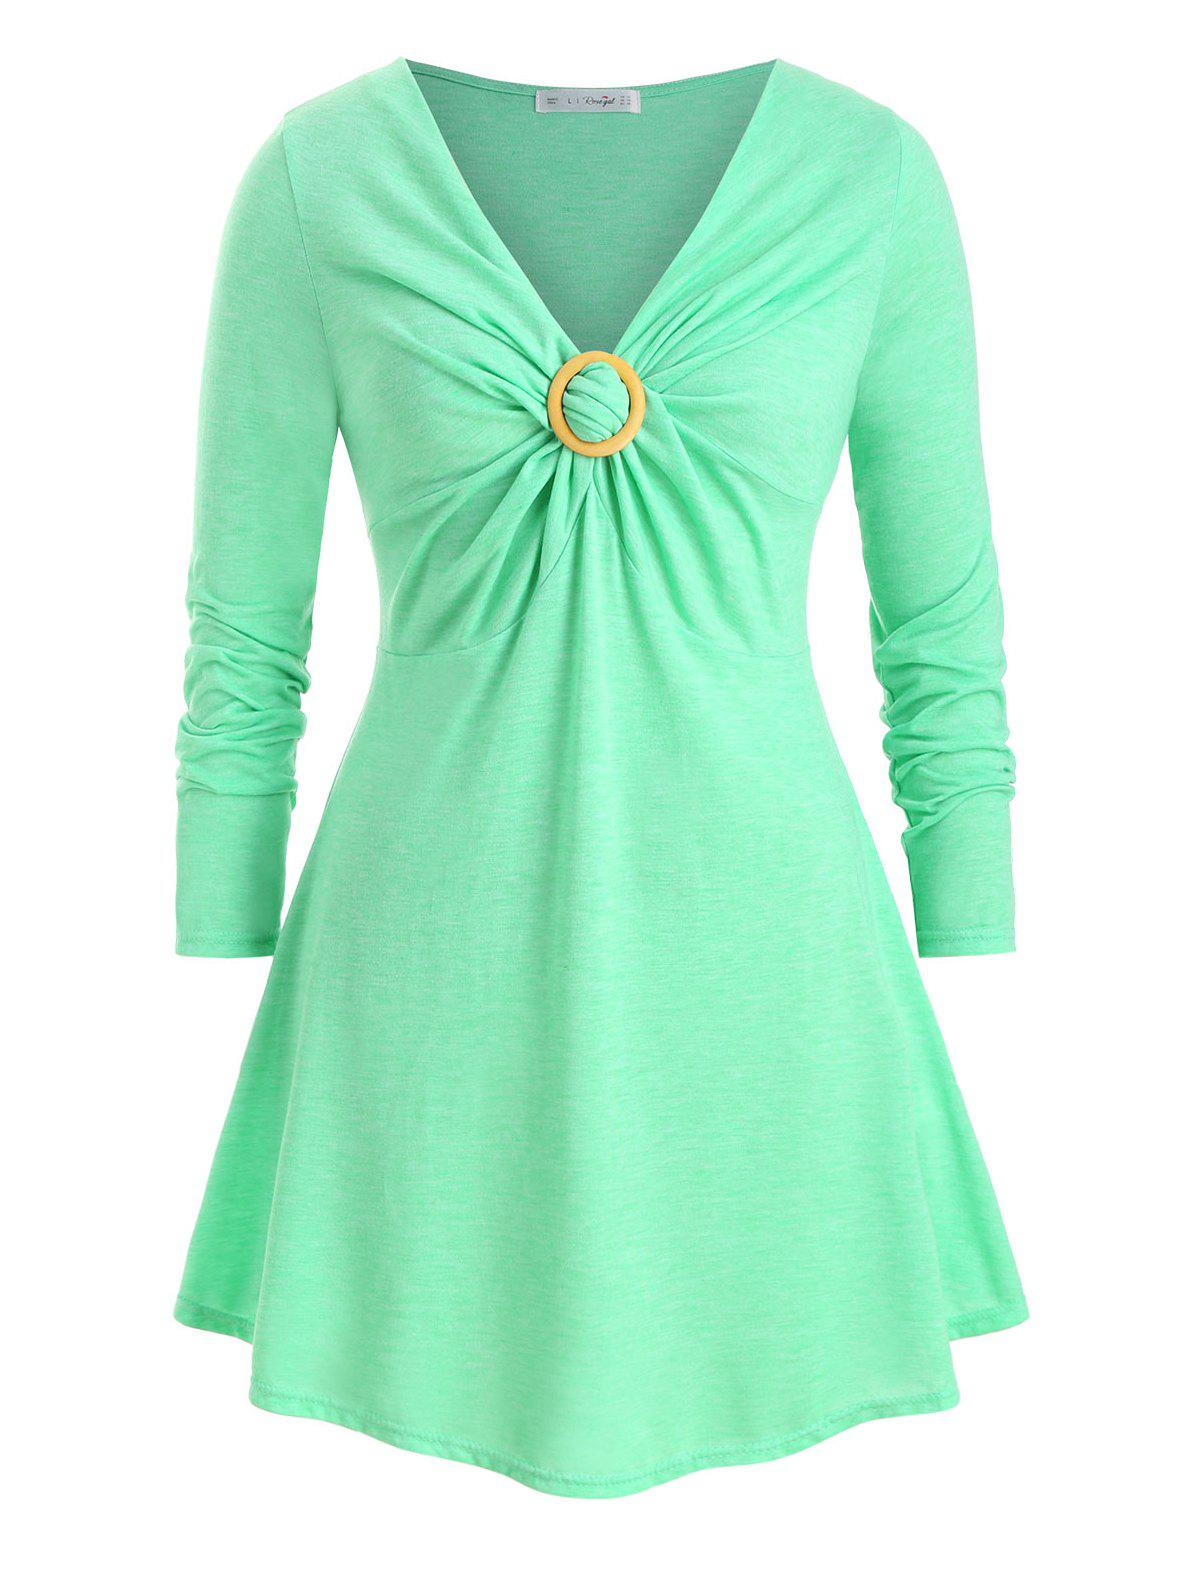 O Ring Twisted Front V Neck Plus Size Longline Top - GREEN L